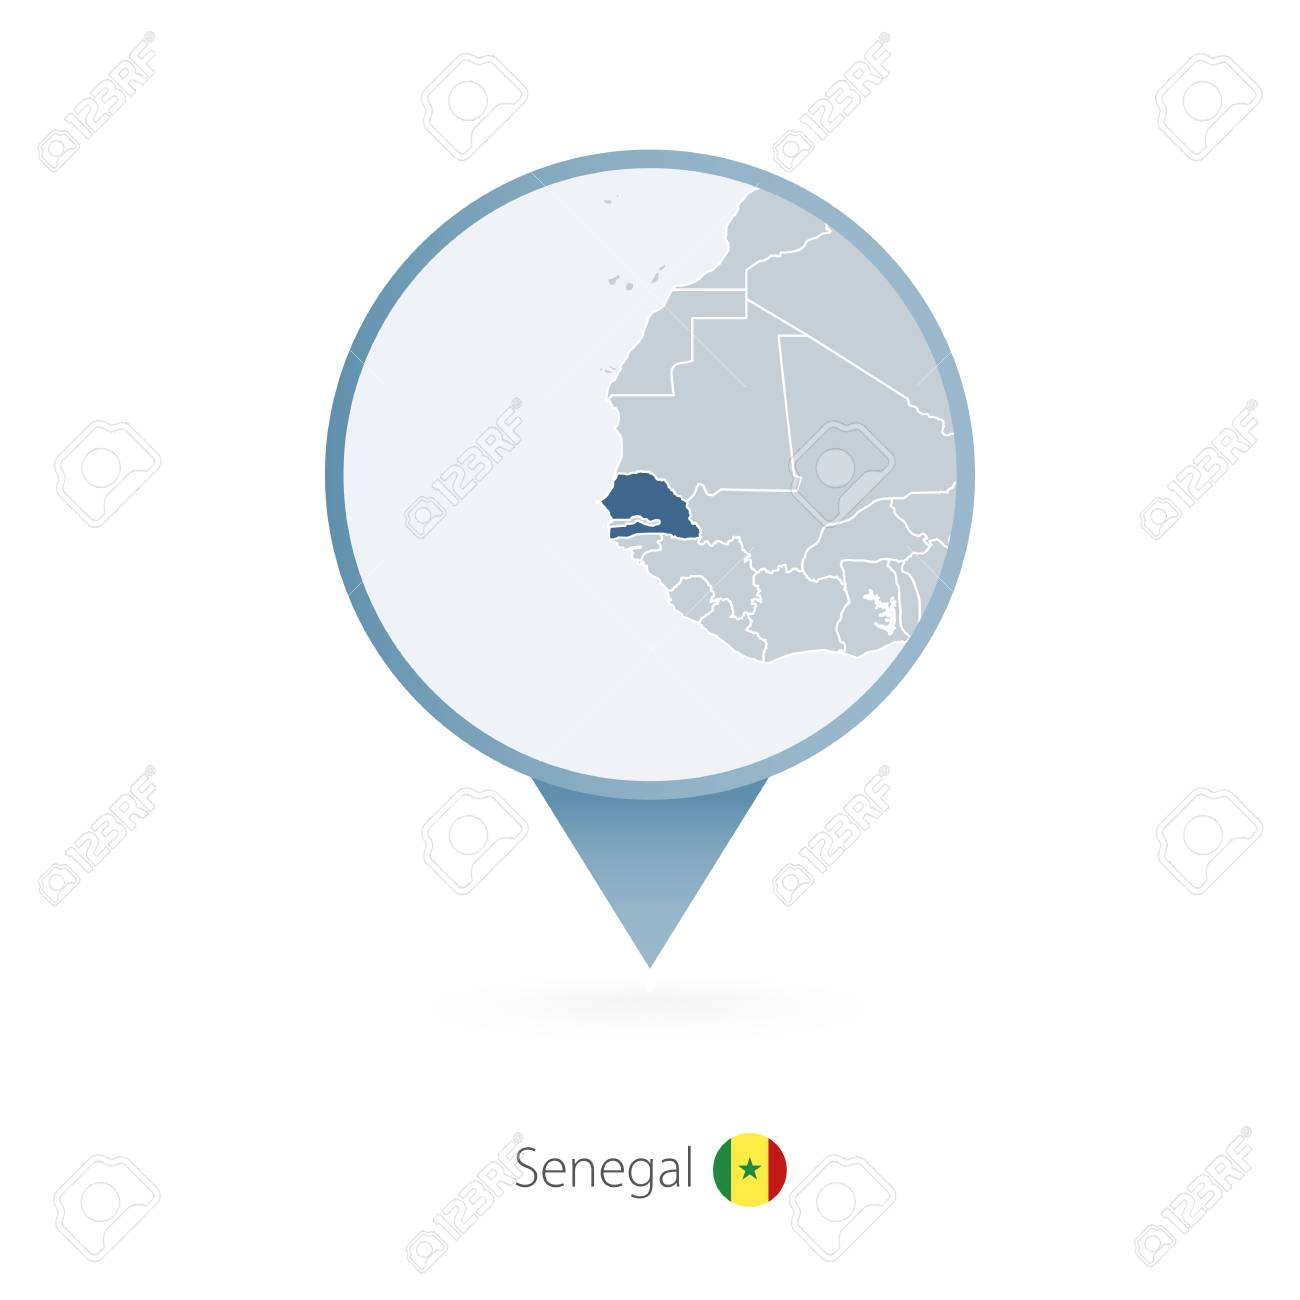 Map pin with detailed map of senegal and neighboring countries map pin with detailed map of senegal and neighboring countries stock vector 96785436 gumiabroncs Choice Image